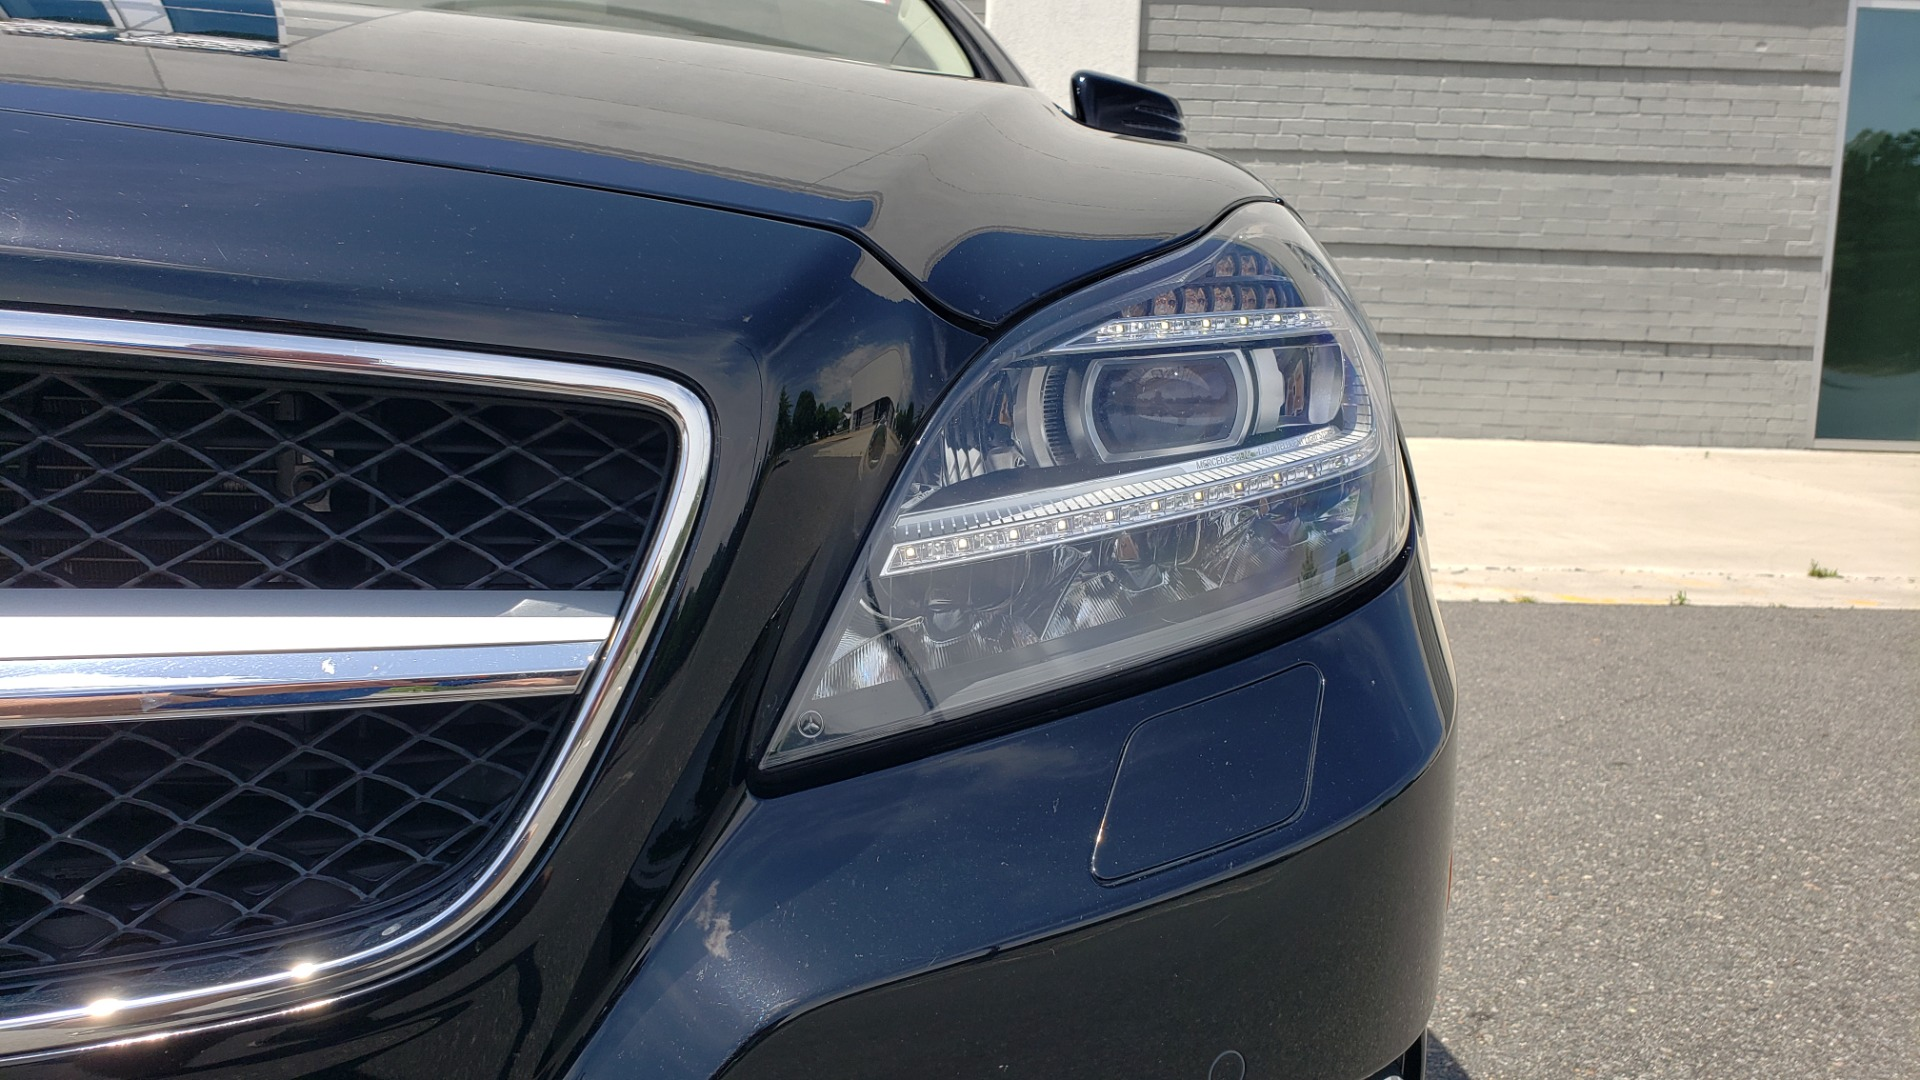 Used 2014 Mercedes-Benz CLS-CLASS CLS 550 PREMIUM / AMG SPORT WHLS / SUNROOF / LANE TRACK / PARKTRONIC for sale Sold at Formula Imports in Charlotte NC 28227 25